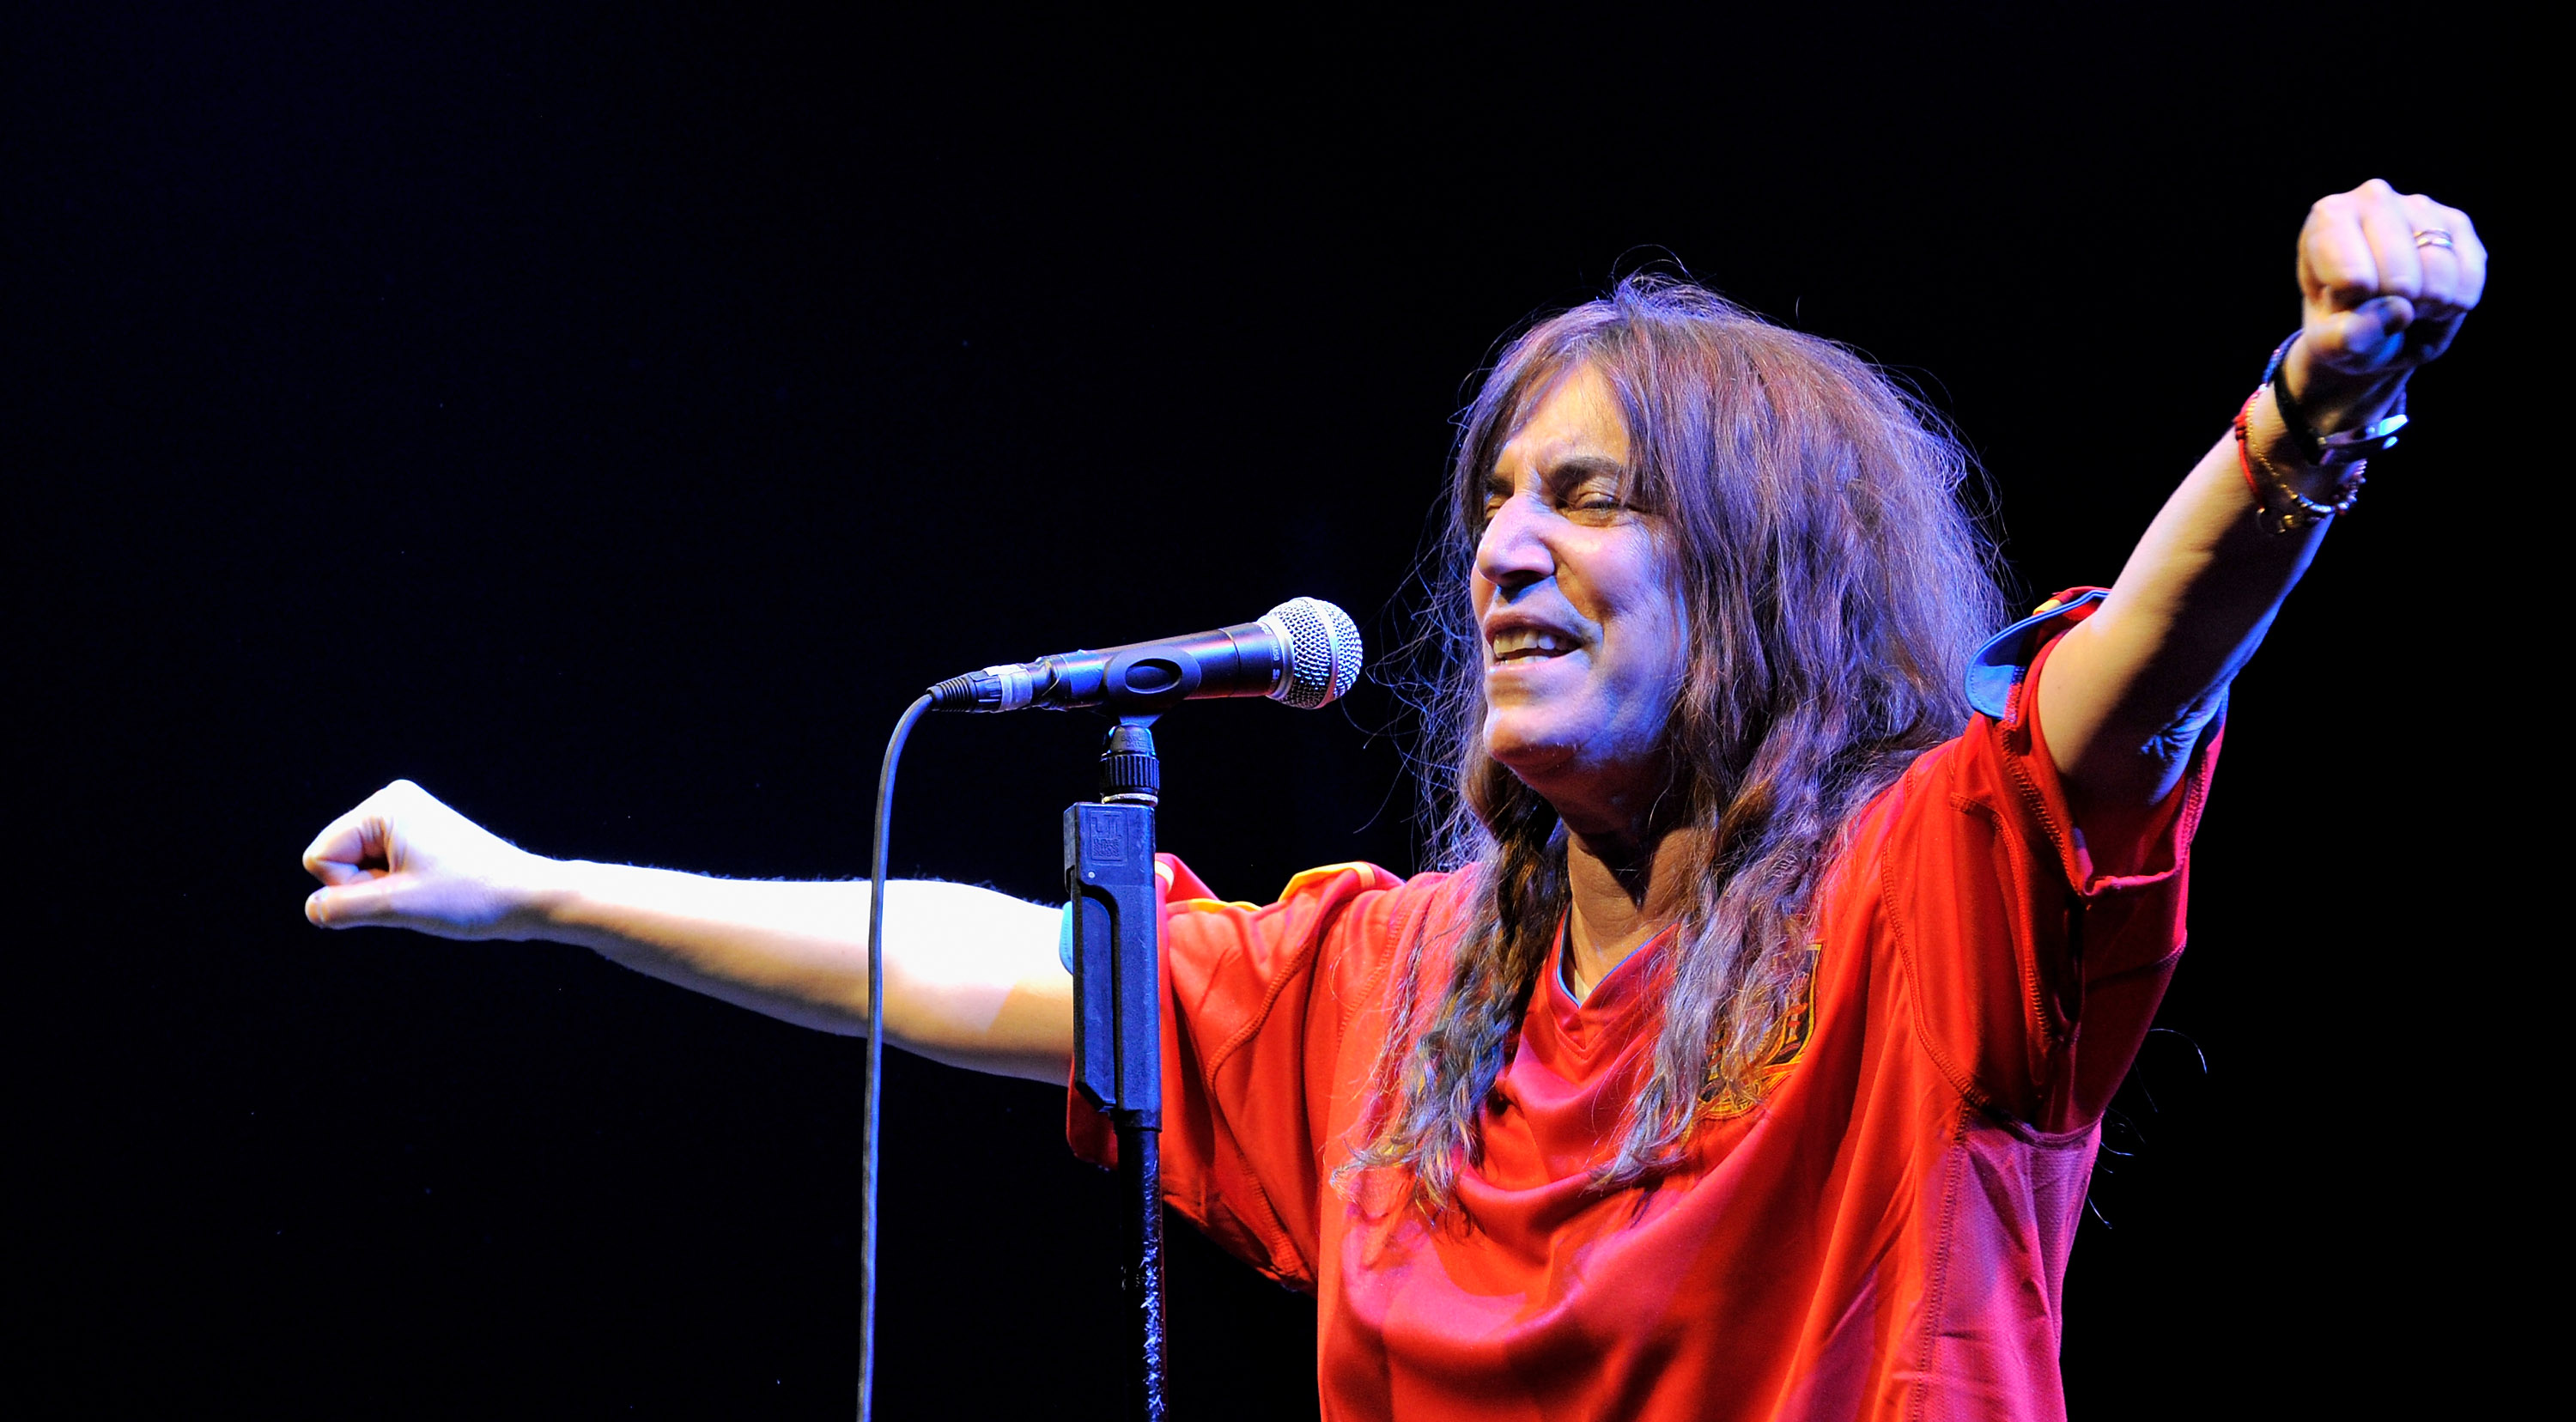 MADRID, SPAIN - JULY 20: American singer Patti Smith performs in concert during